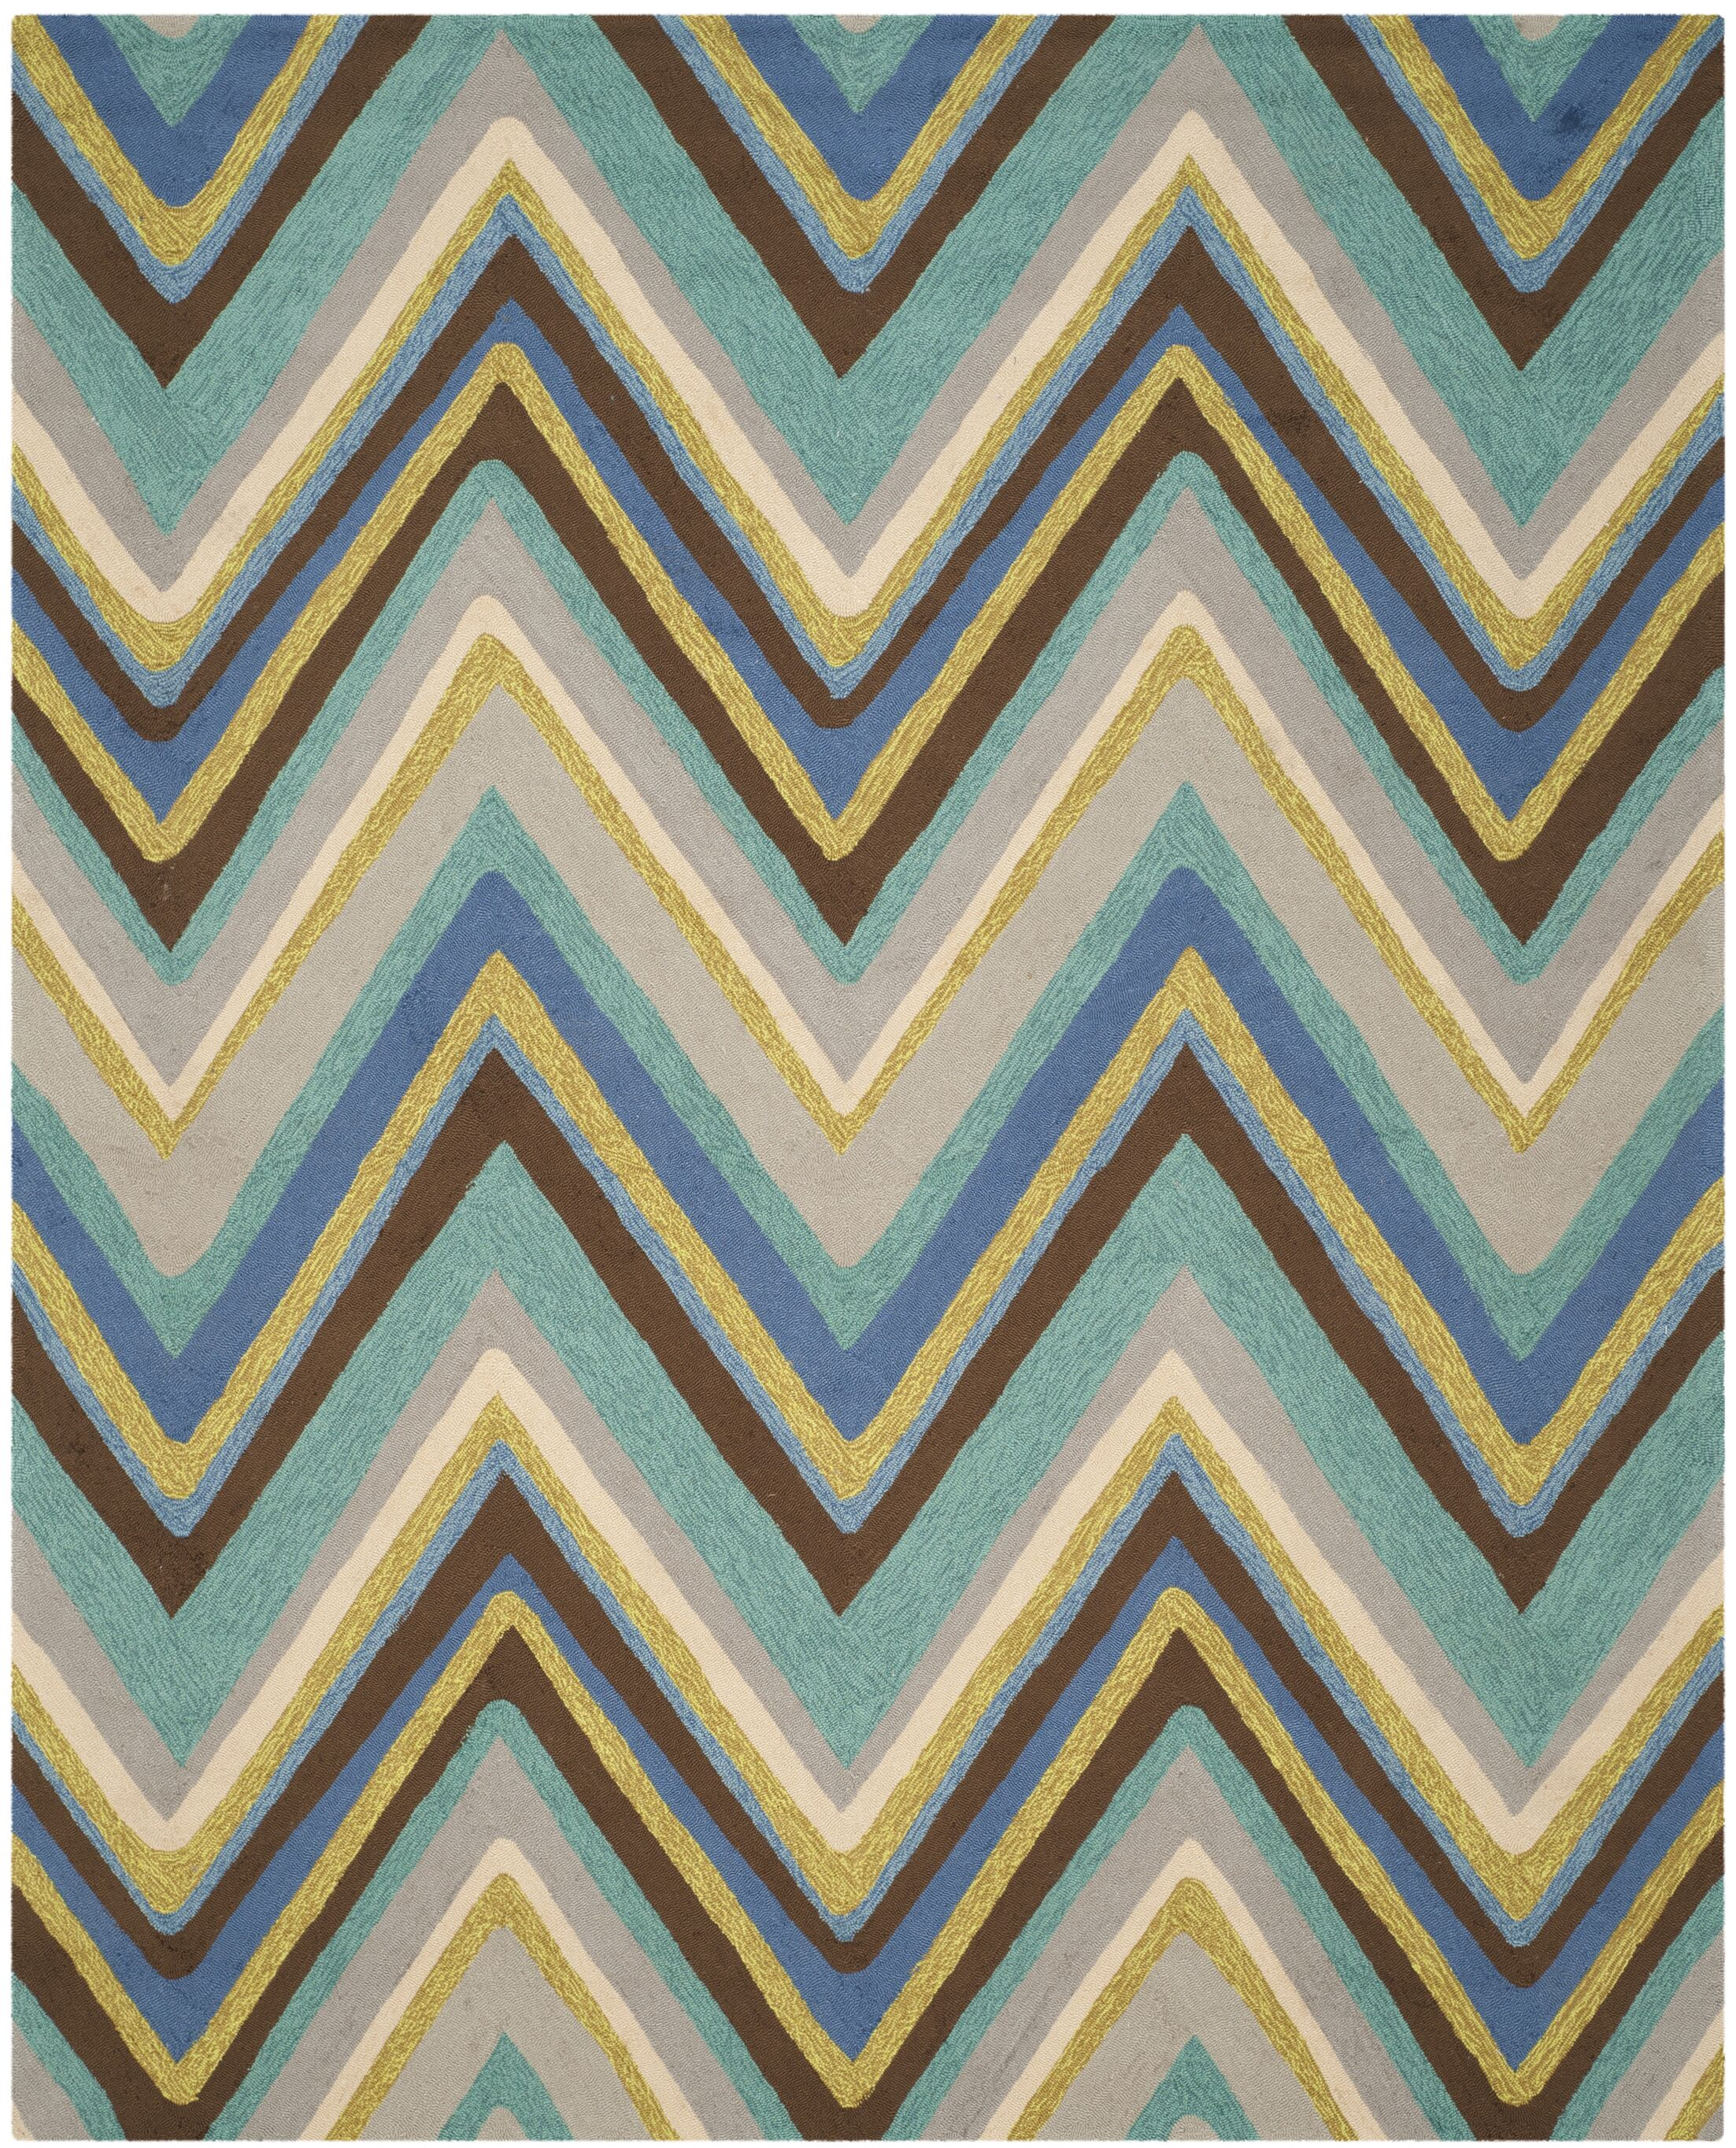 Hayes Hand-Hooked Blue Area Rug Rug Size: Rectangle 5' x 7'